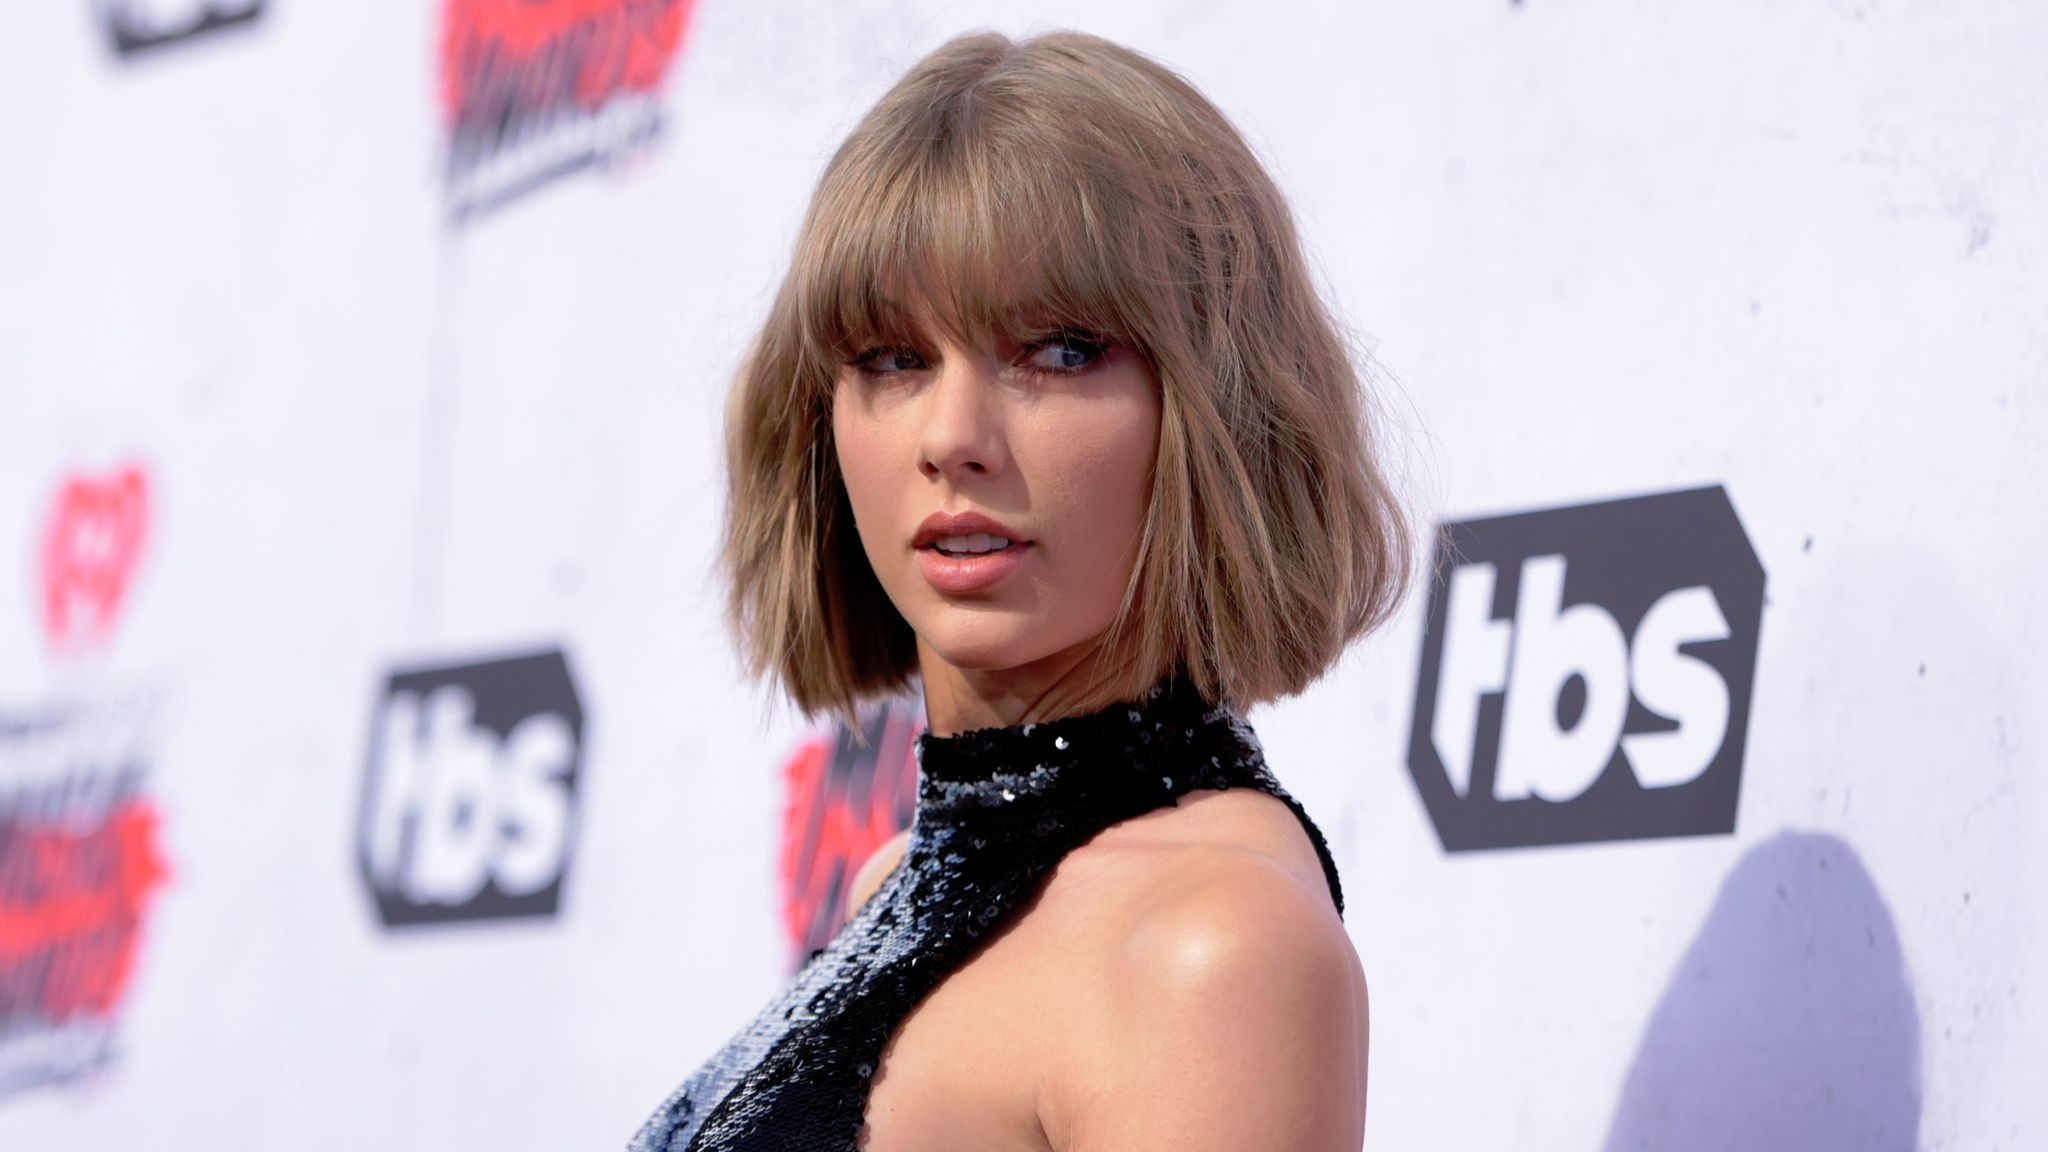 Taylor Swift rouses fans with in-your-face groping testimony